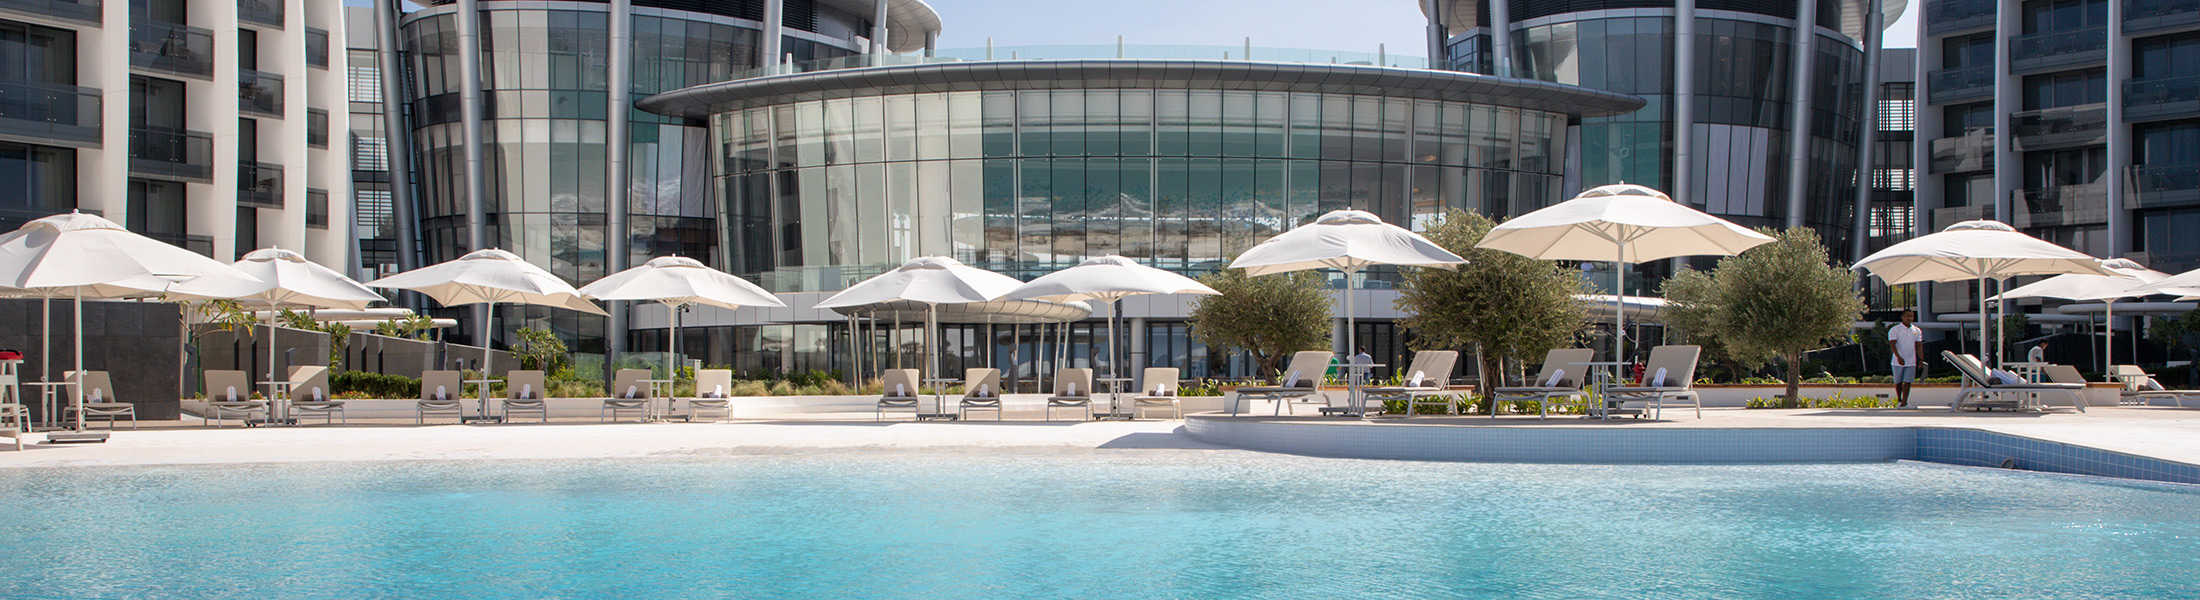 Outdoor pool and sun loungers at Jumeirah at Saadiyat Island